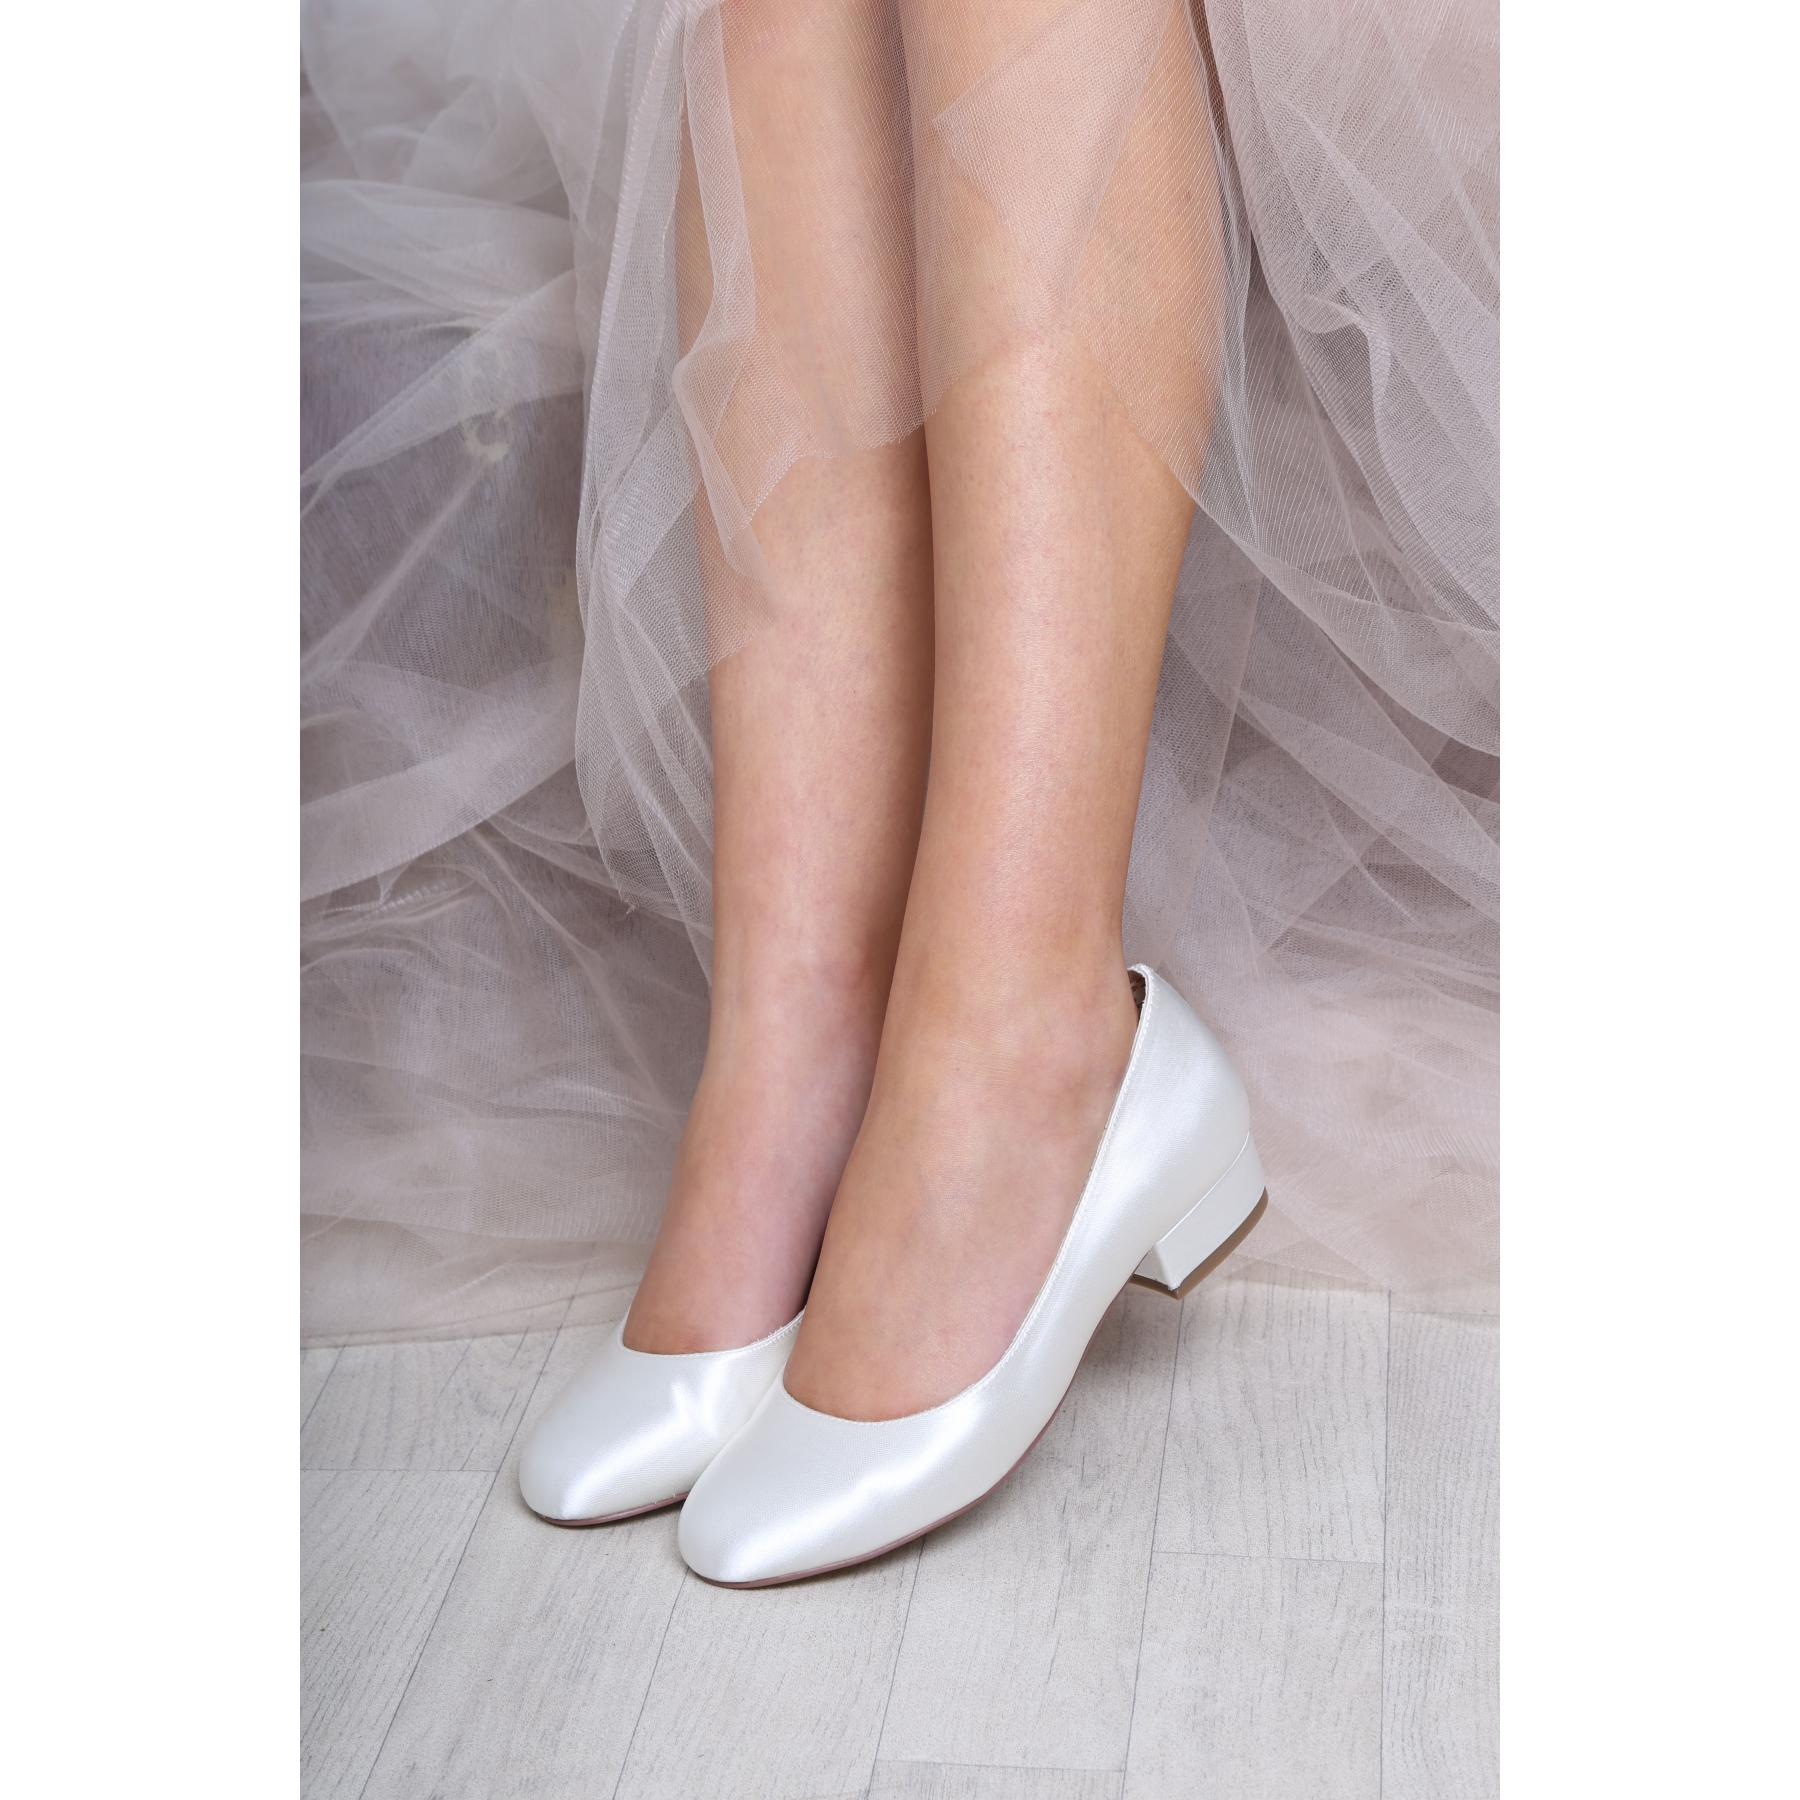 Perfect Bridal Fern Shoes - Ivory Satin